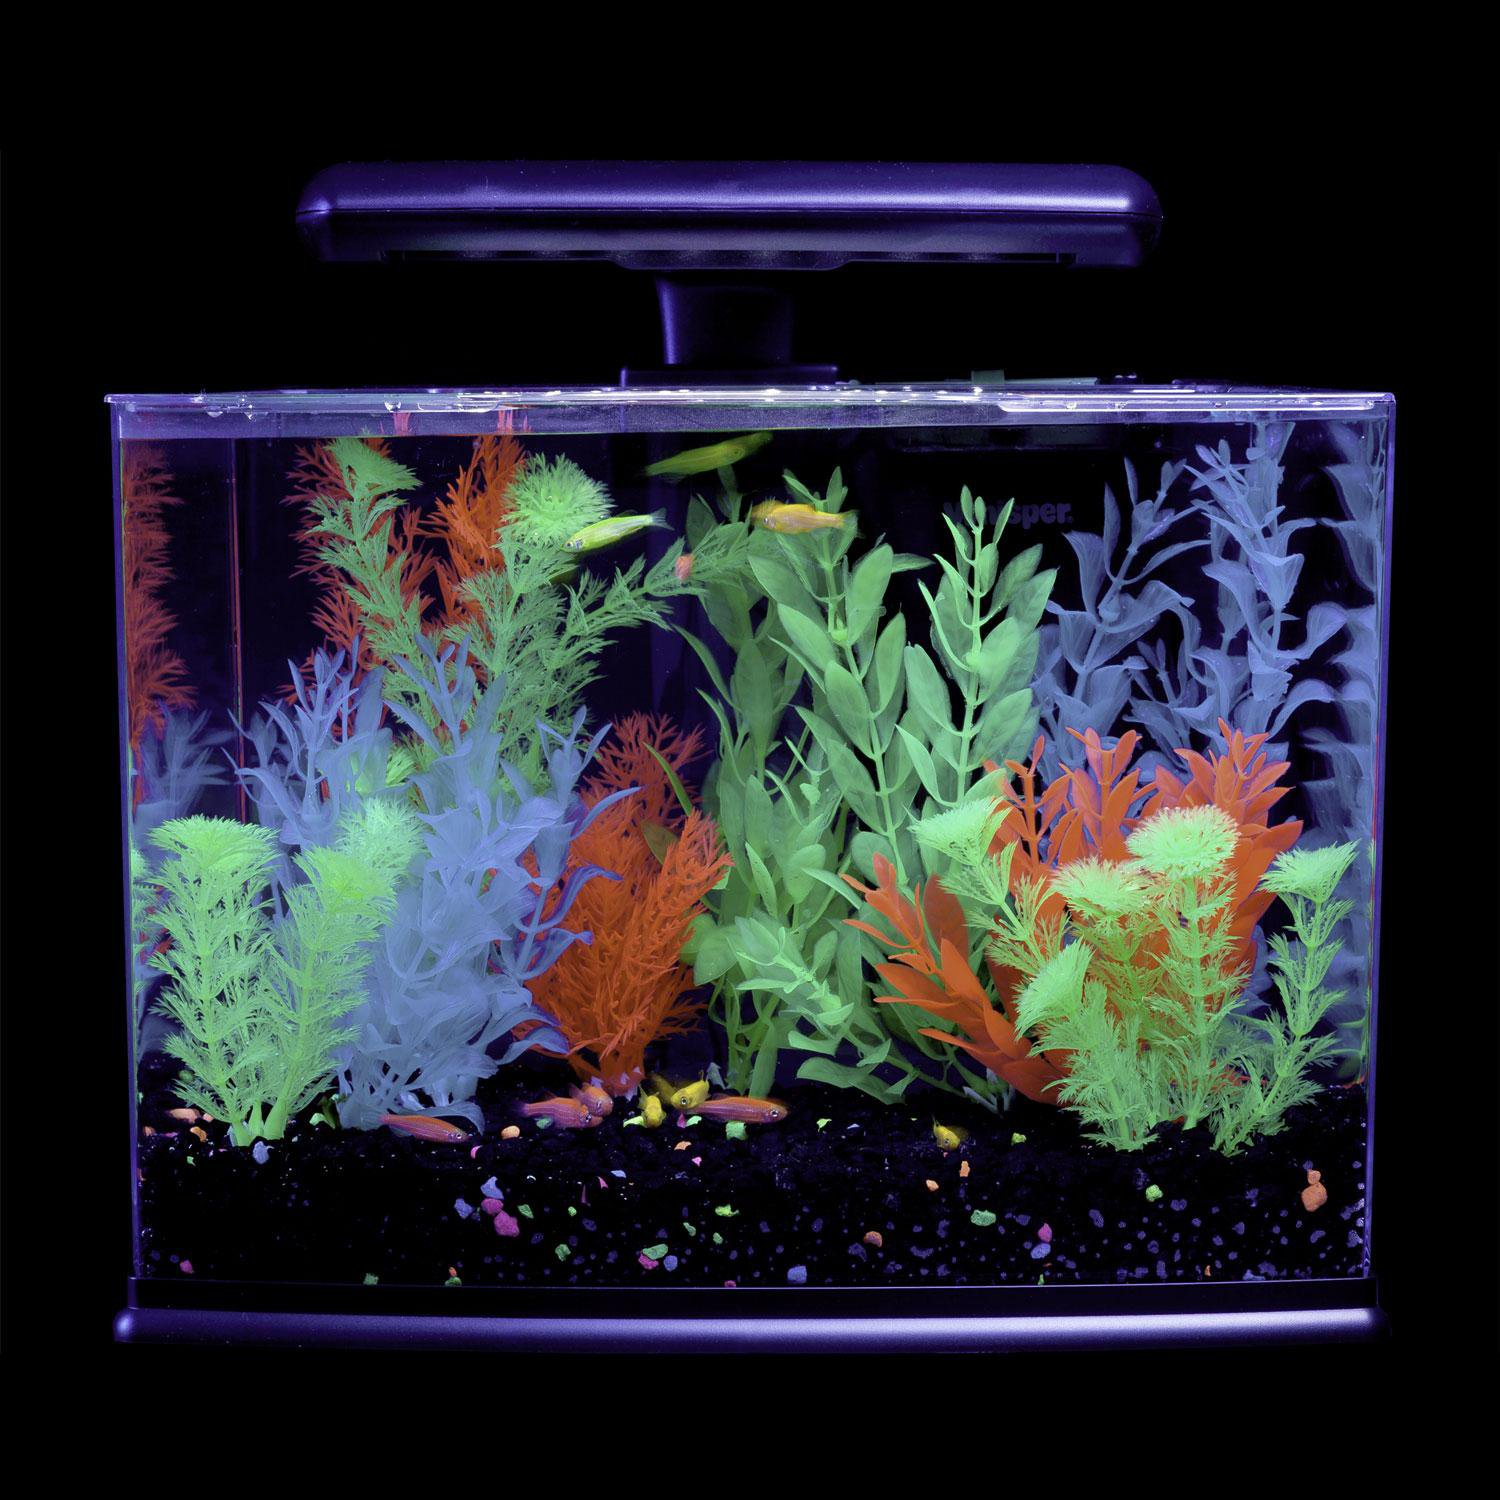 GloFish 3 Gallon Aquarium Kit